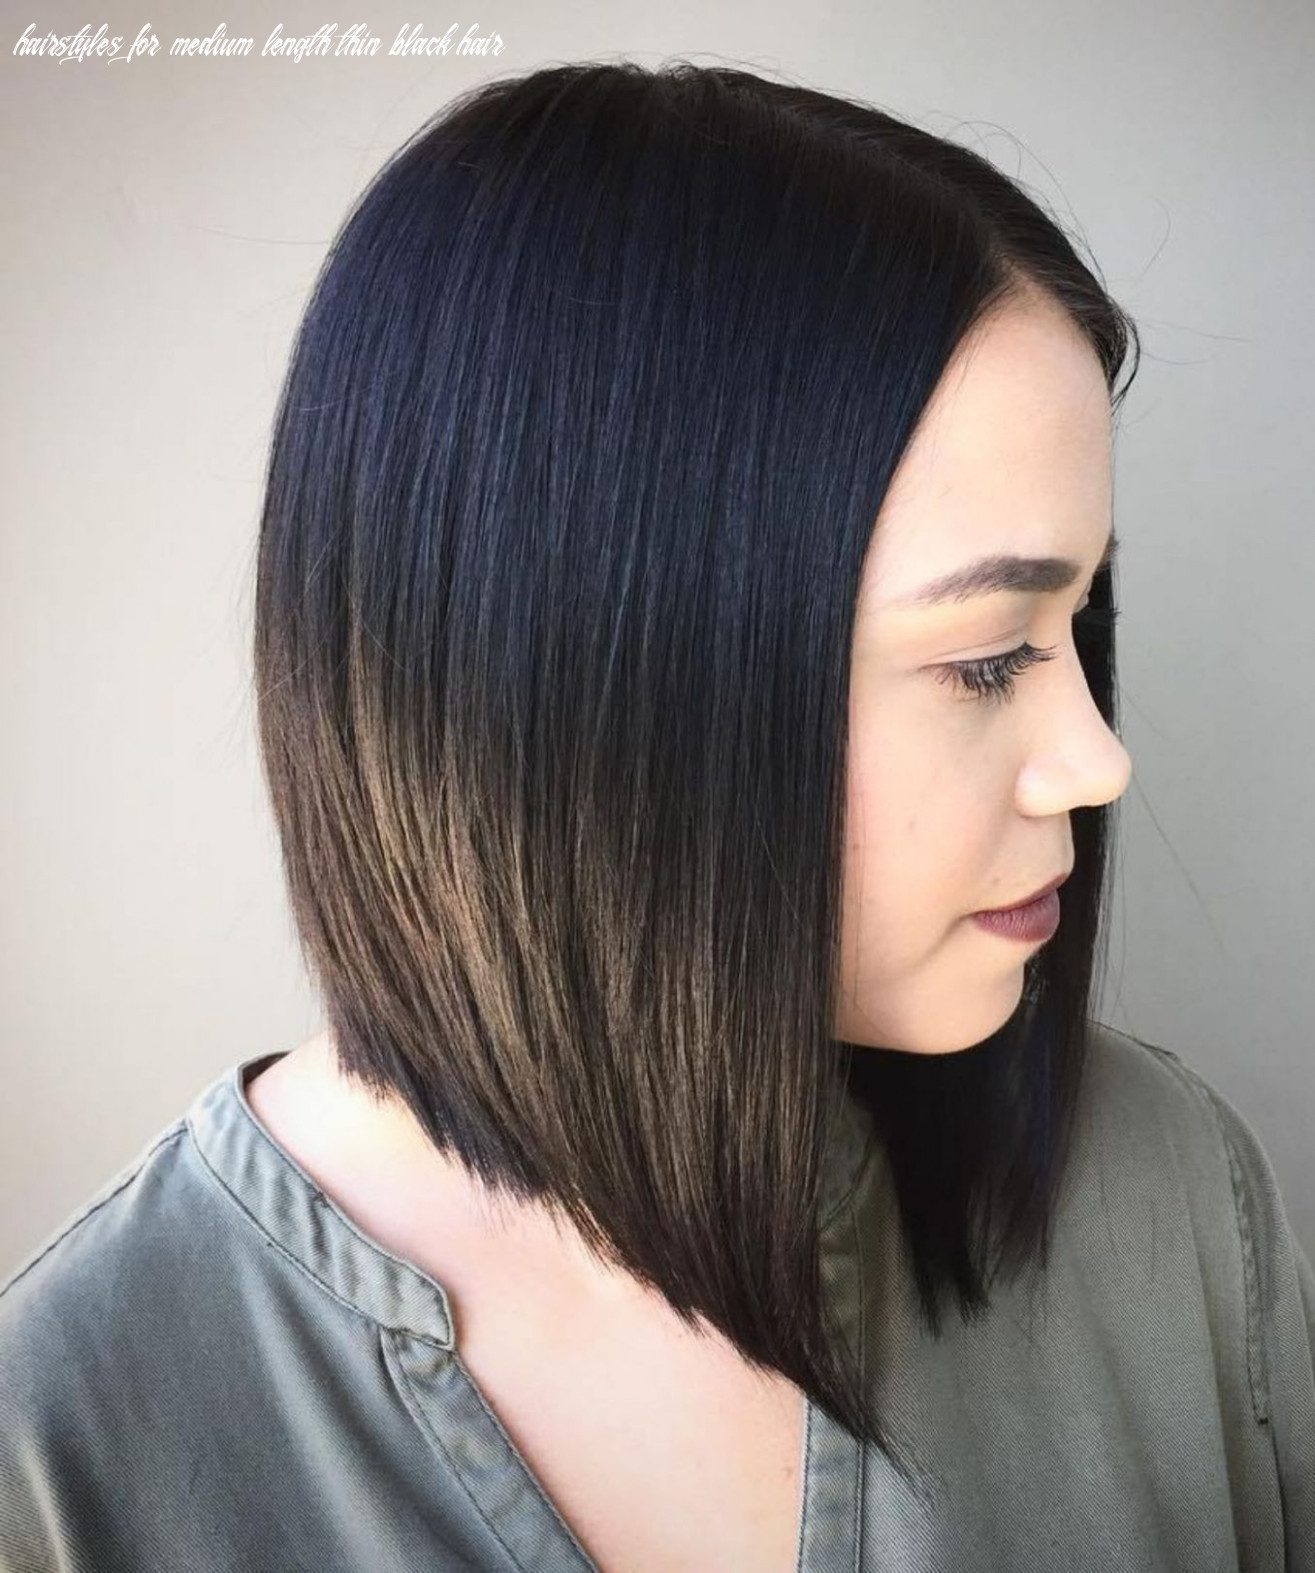 Pin on hairstyle hairstyles for medium length thin black hair